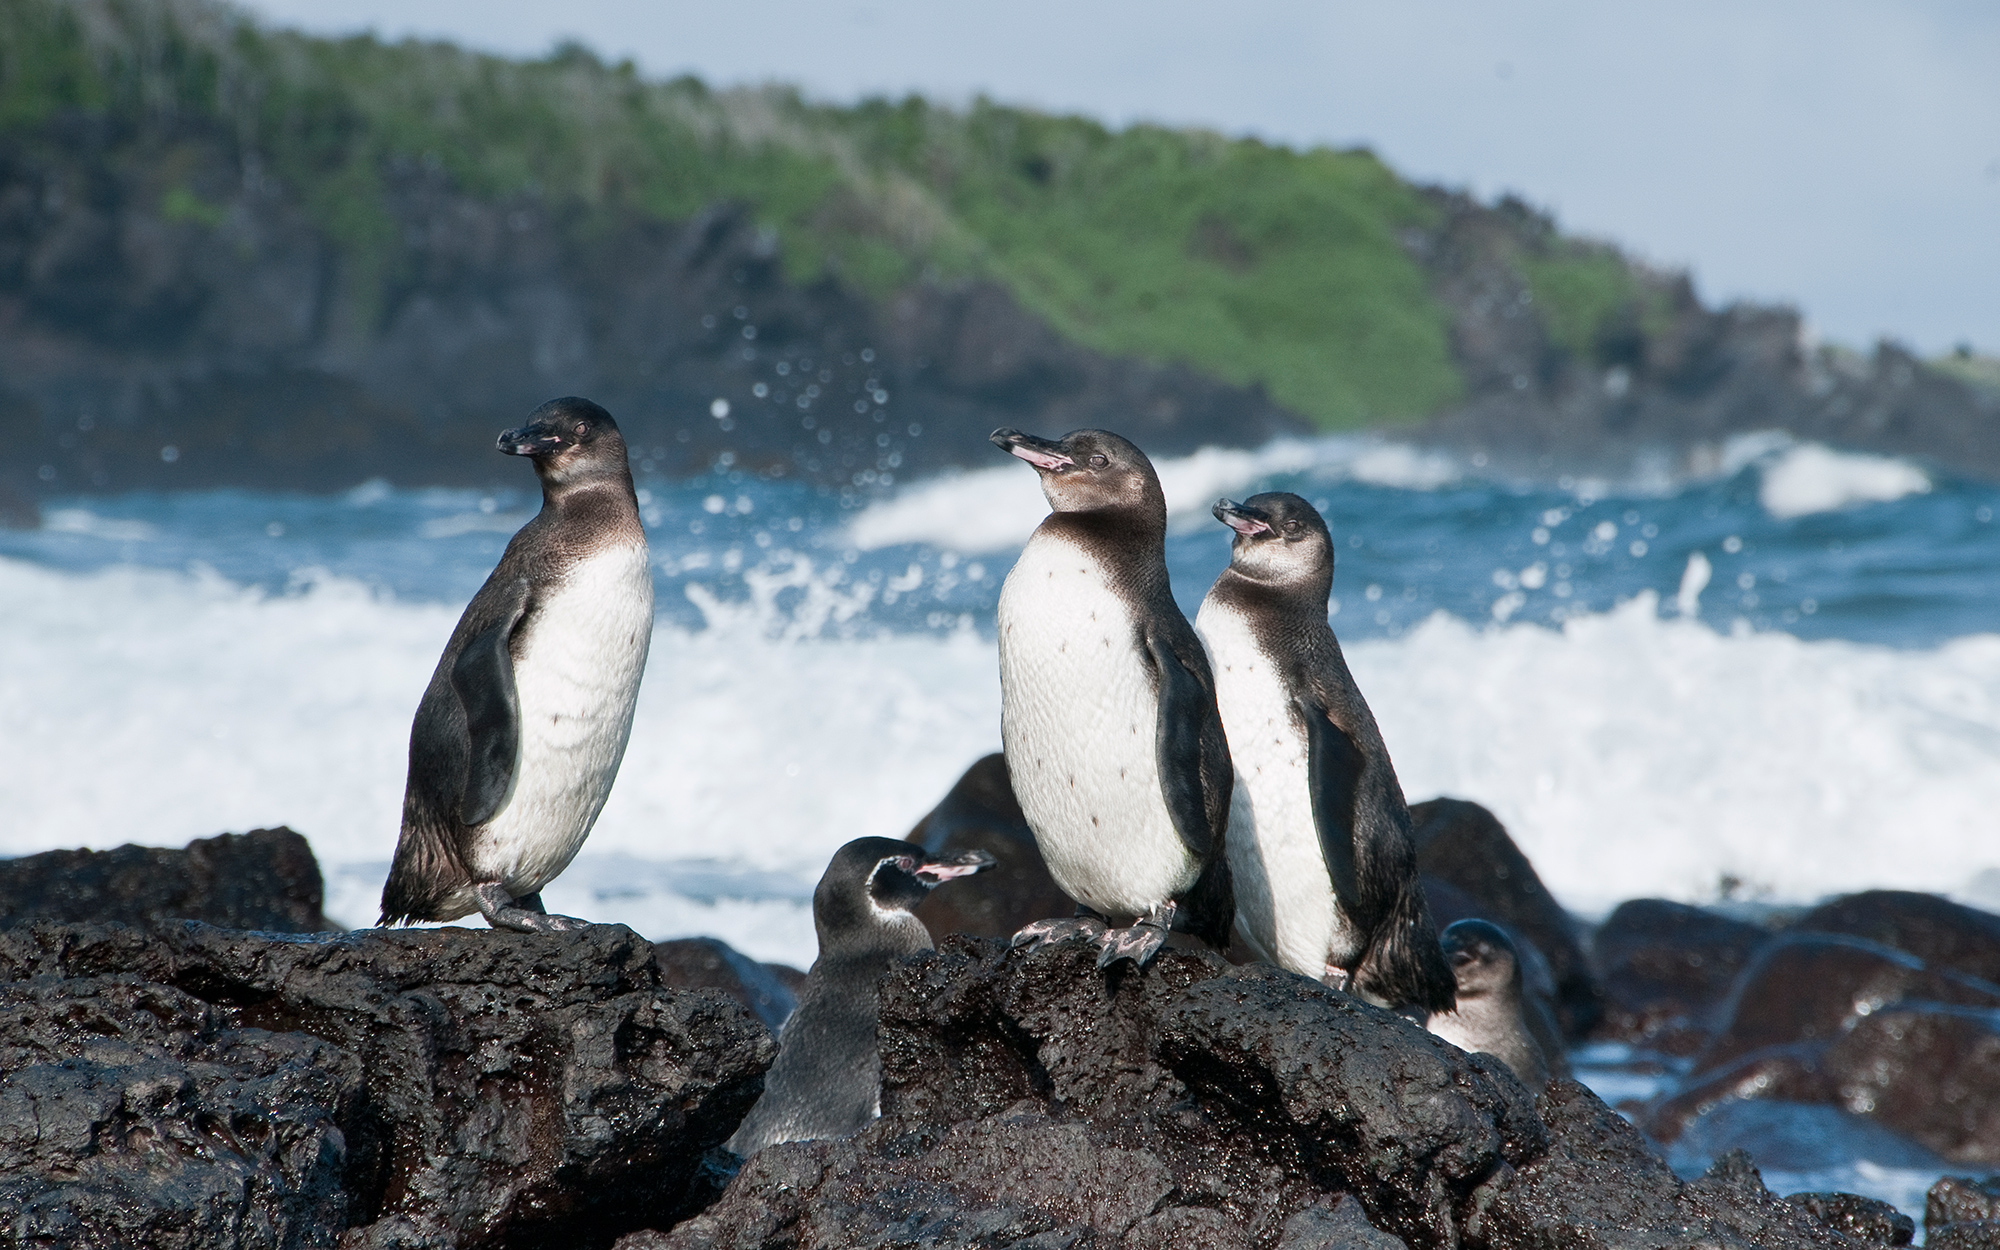 Where to See Penguins: Galapagos Islands